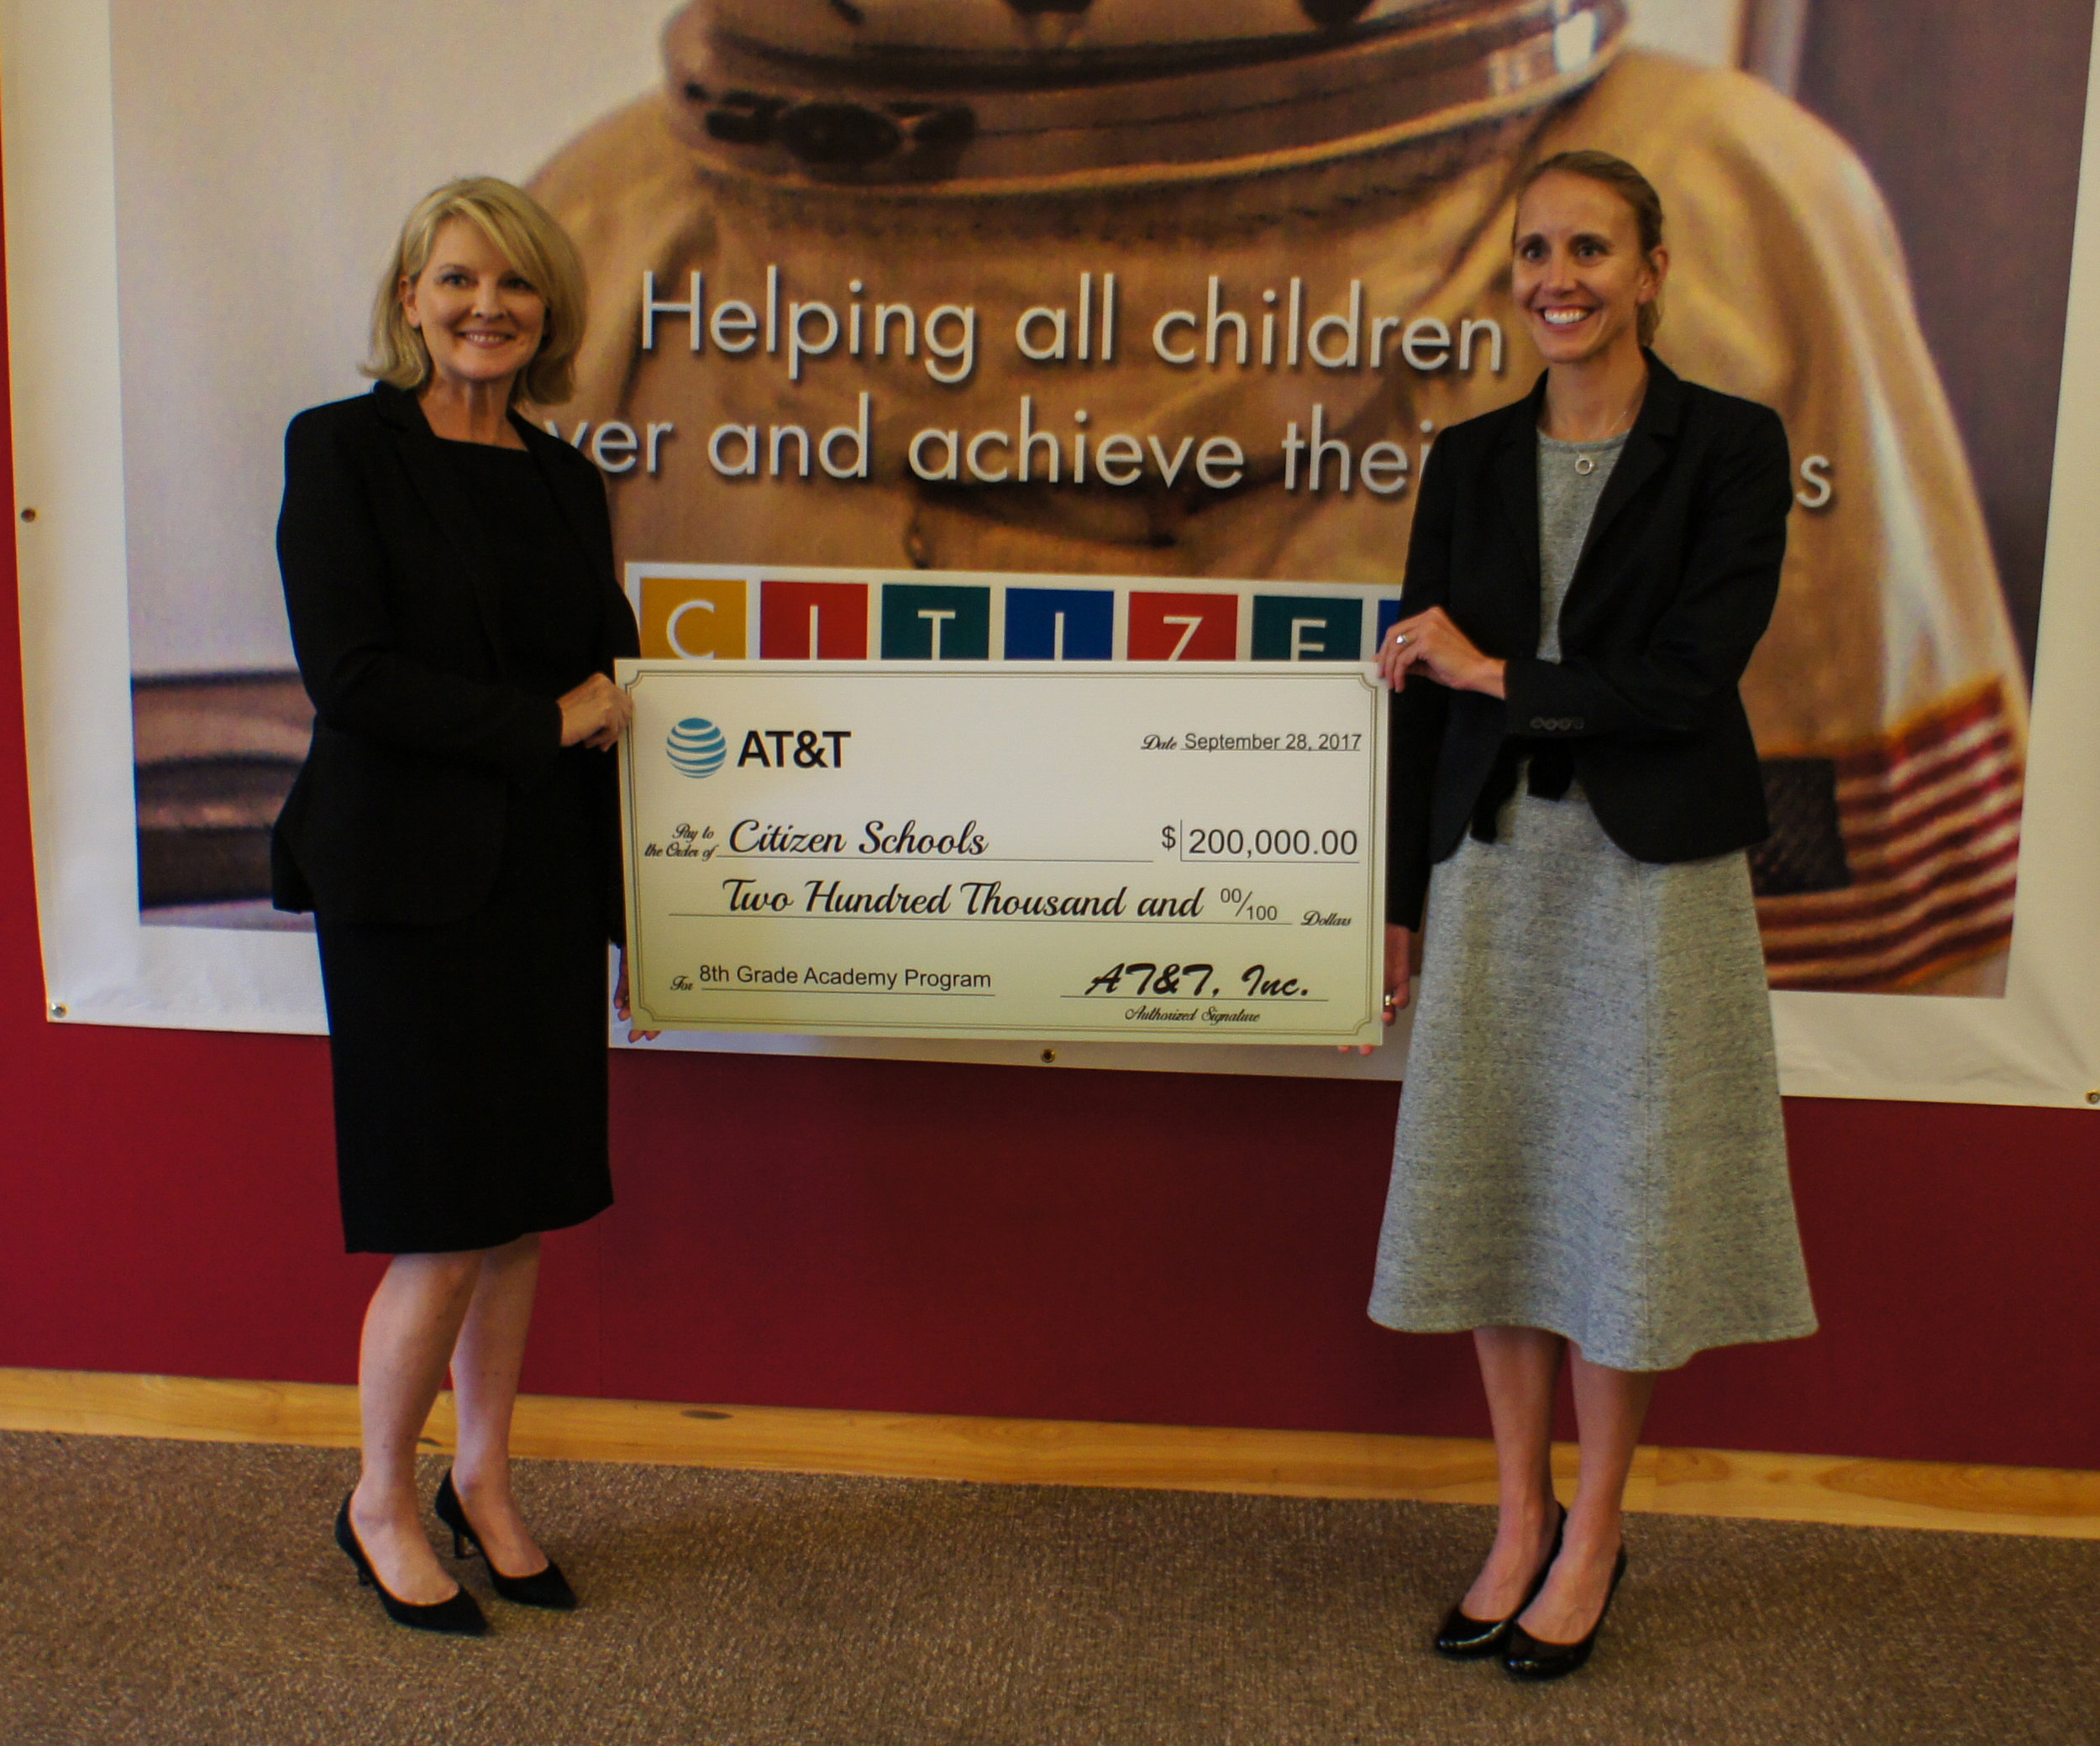 Patty Jacobs, President of AT&T New England, presents Citizen Schools CEO Em McCann with AT&T Aspire's $200,000 grant award